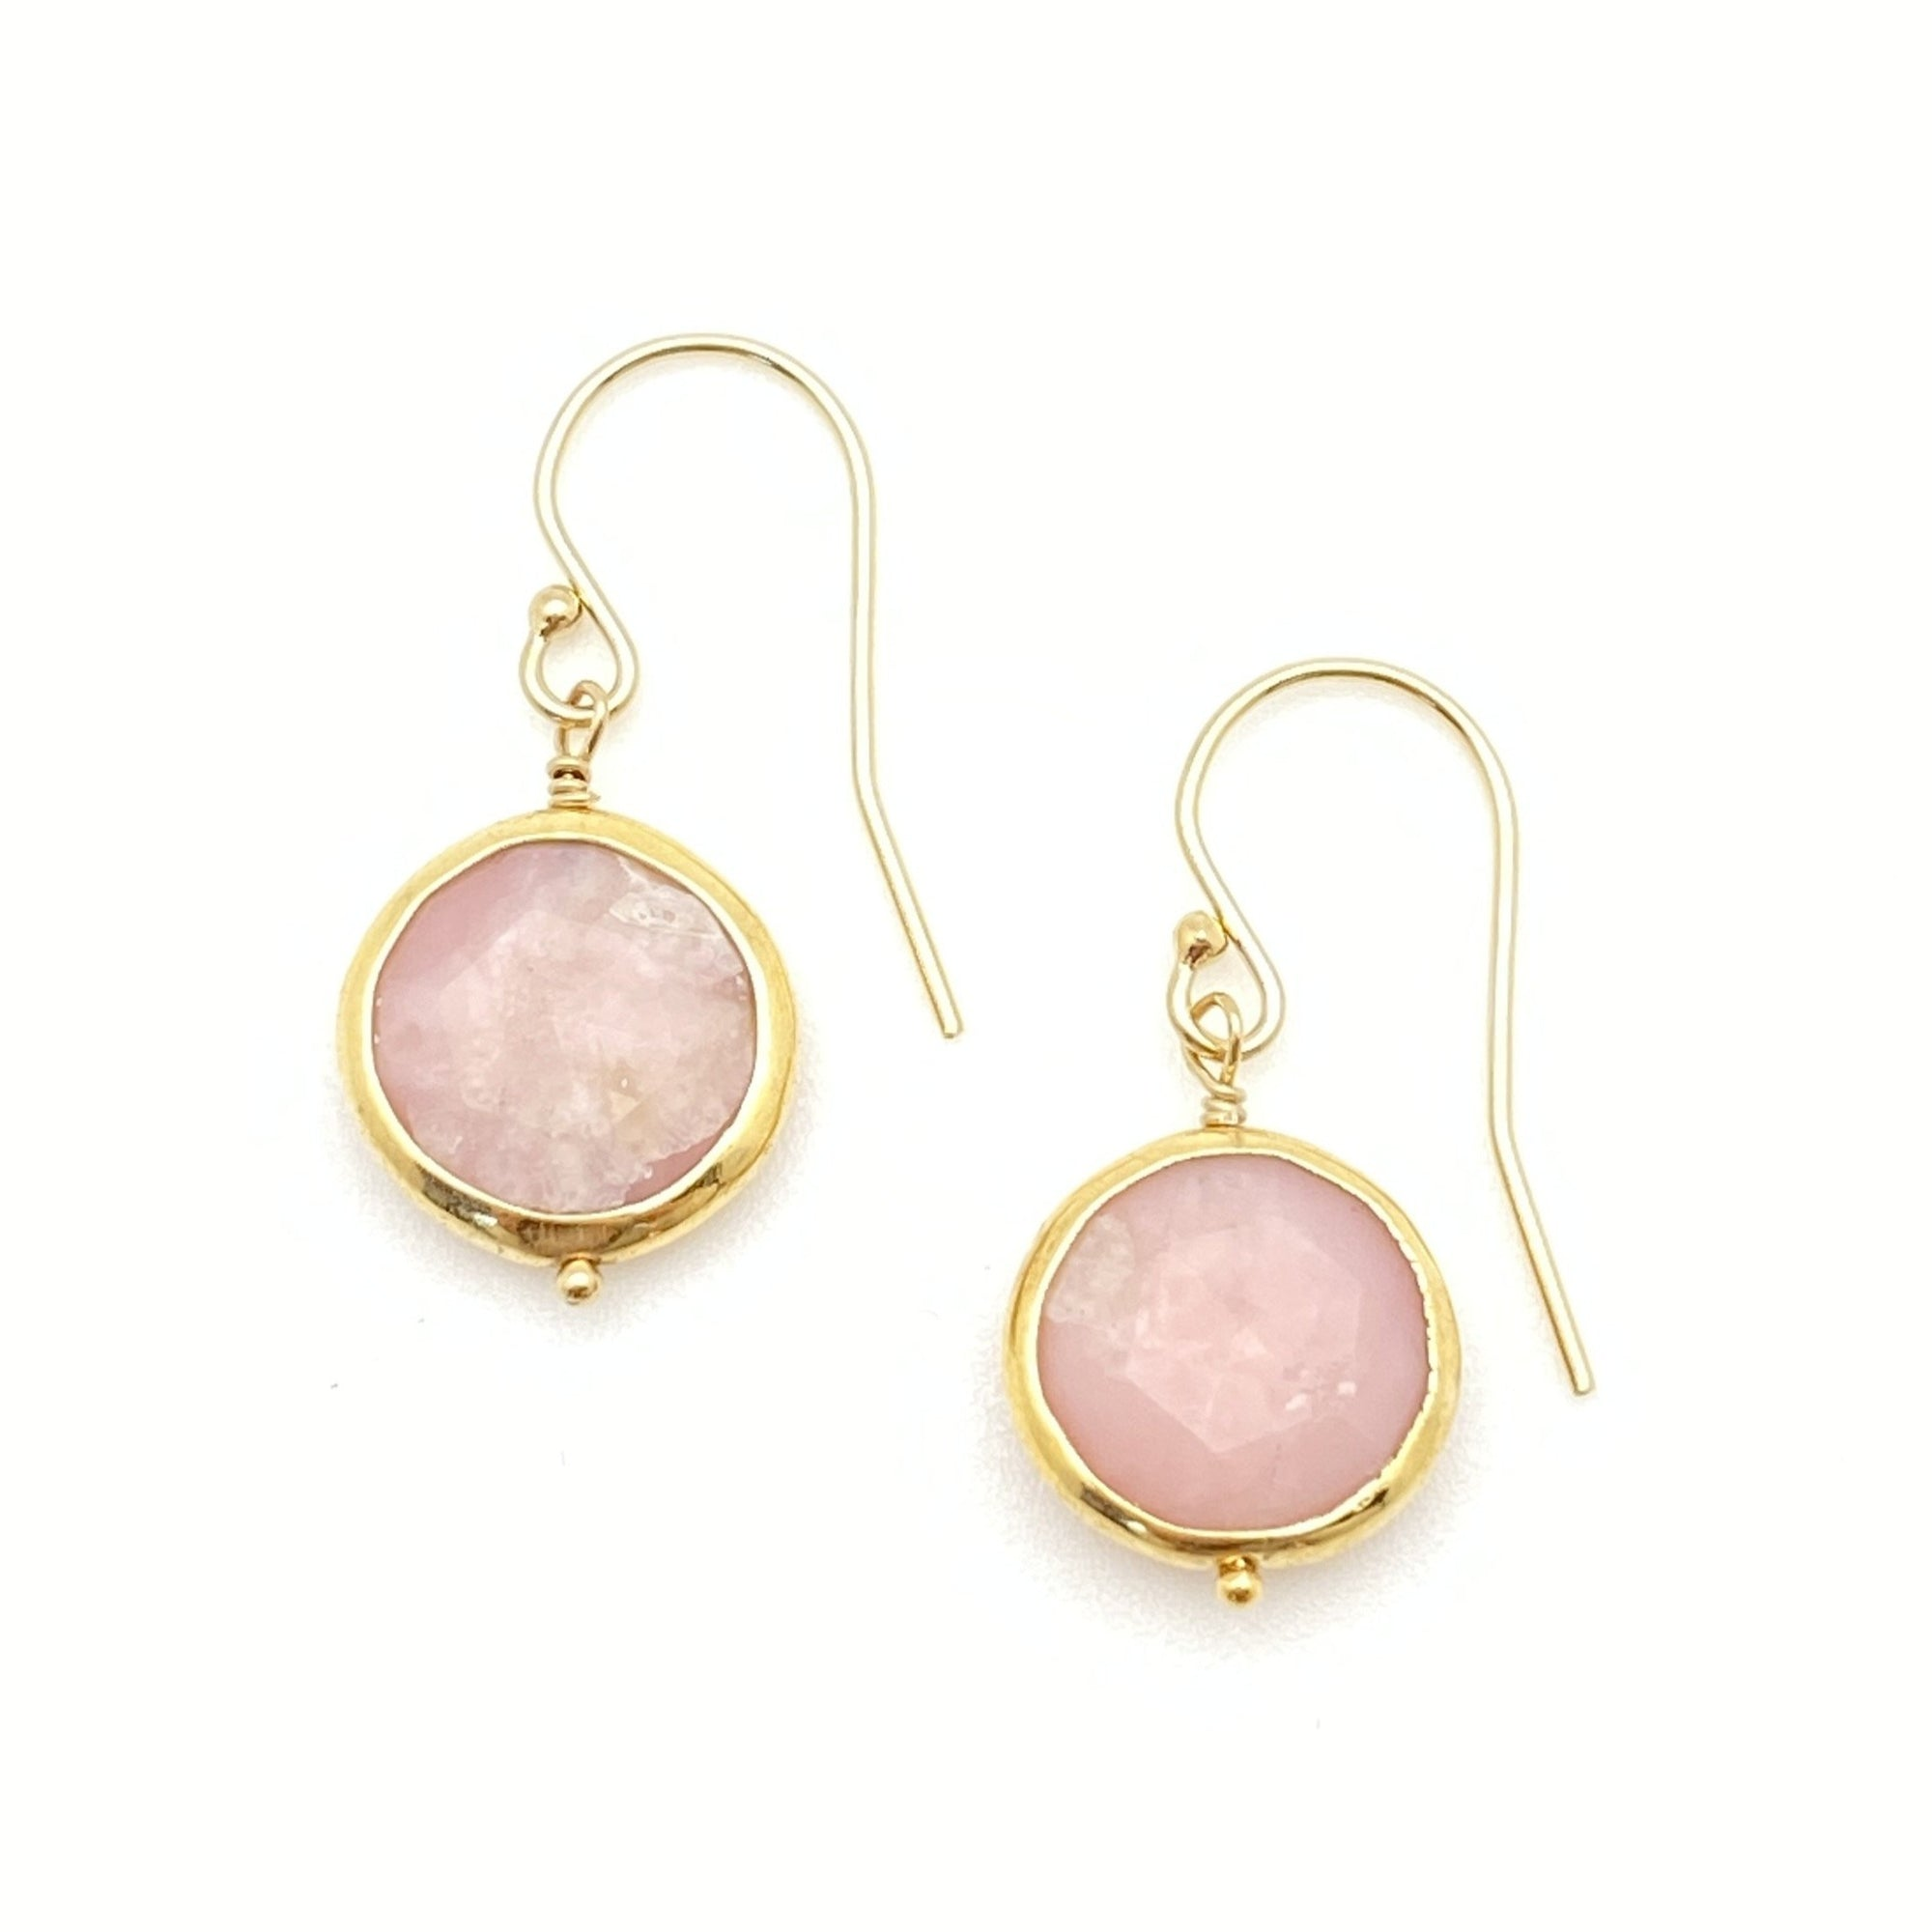 Kristen Earrings - Pink Opal